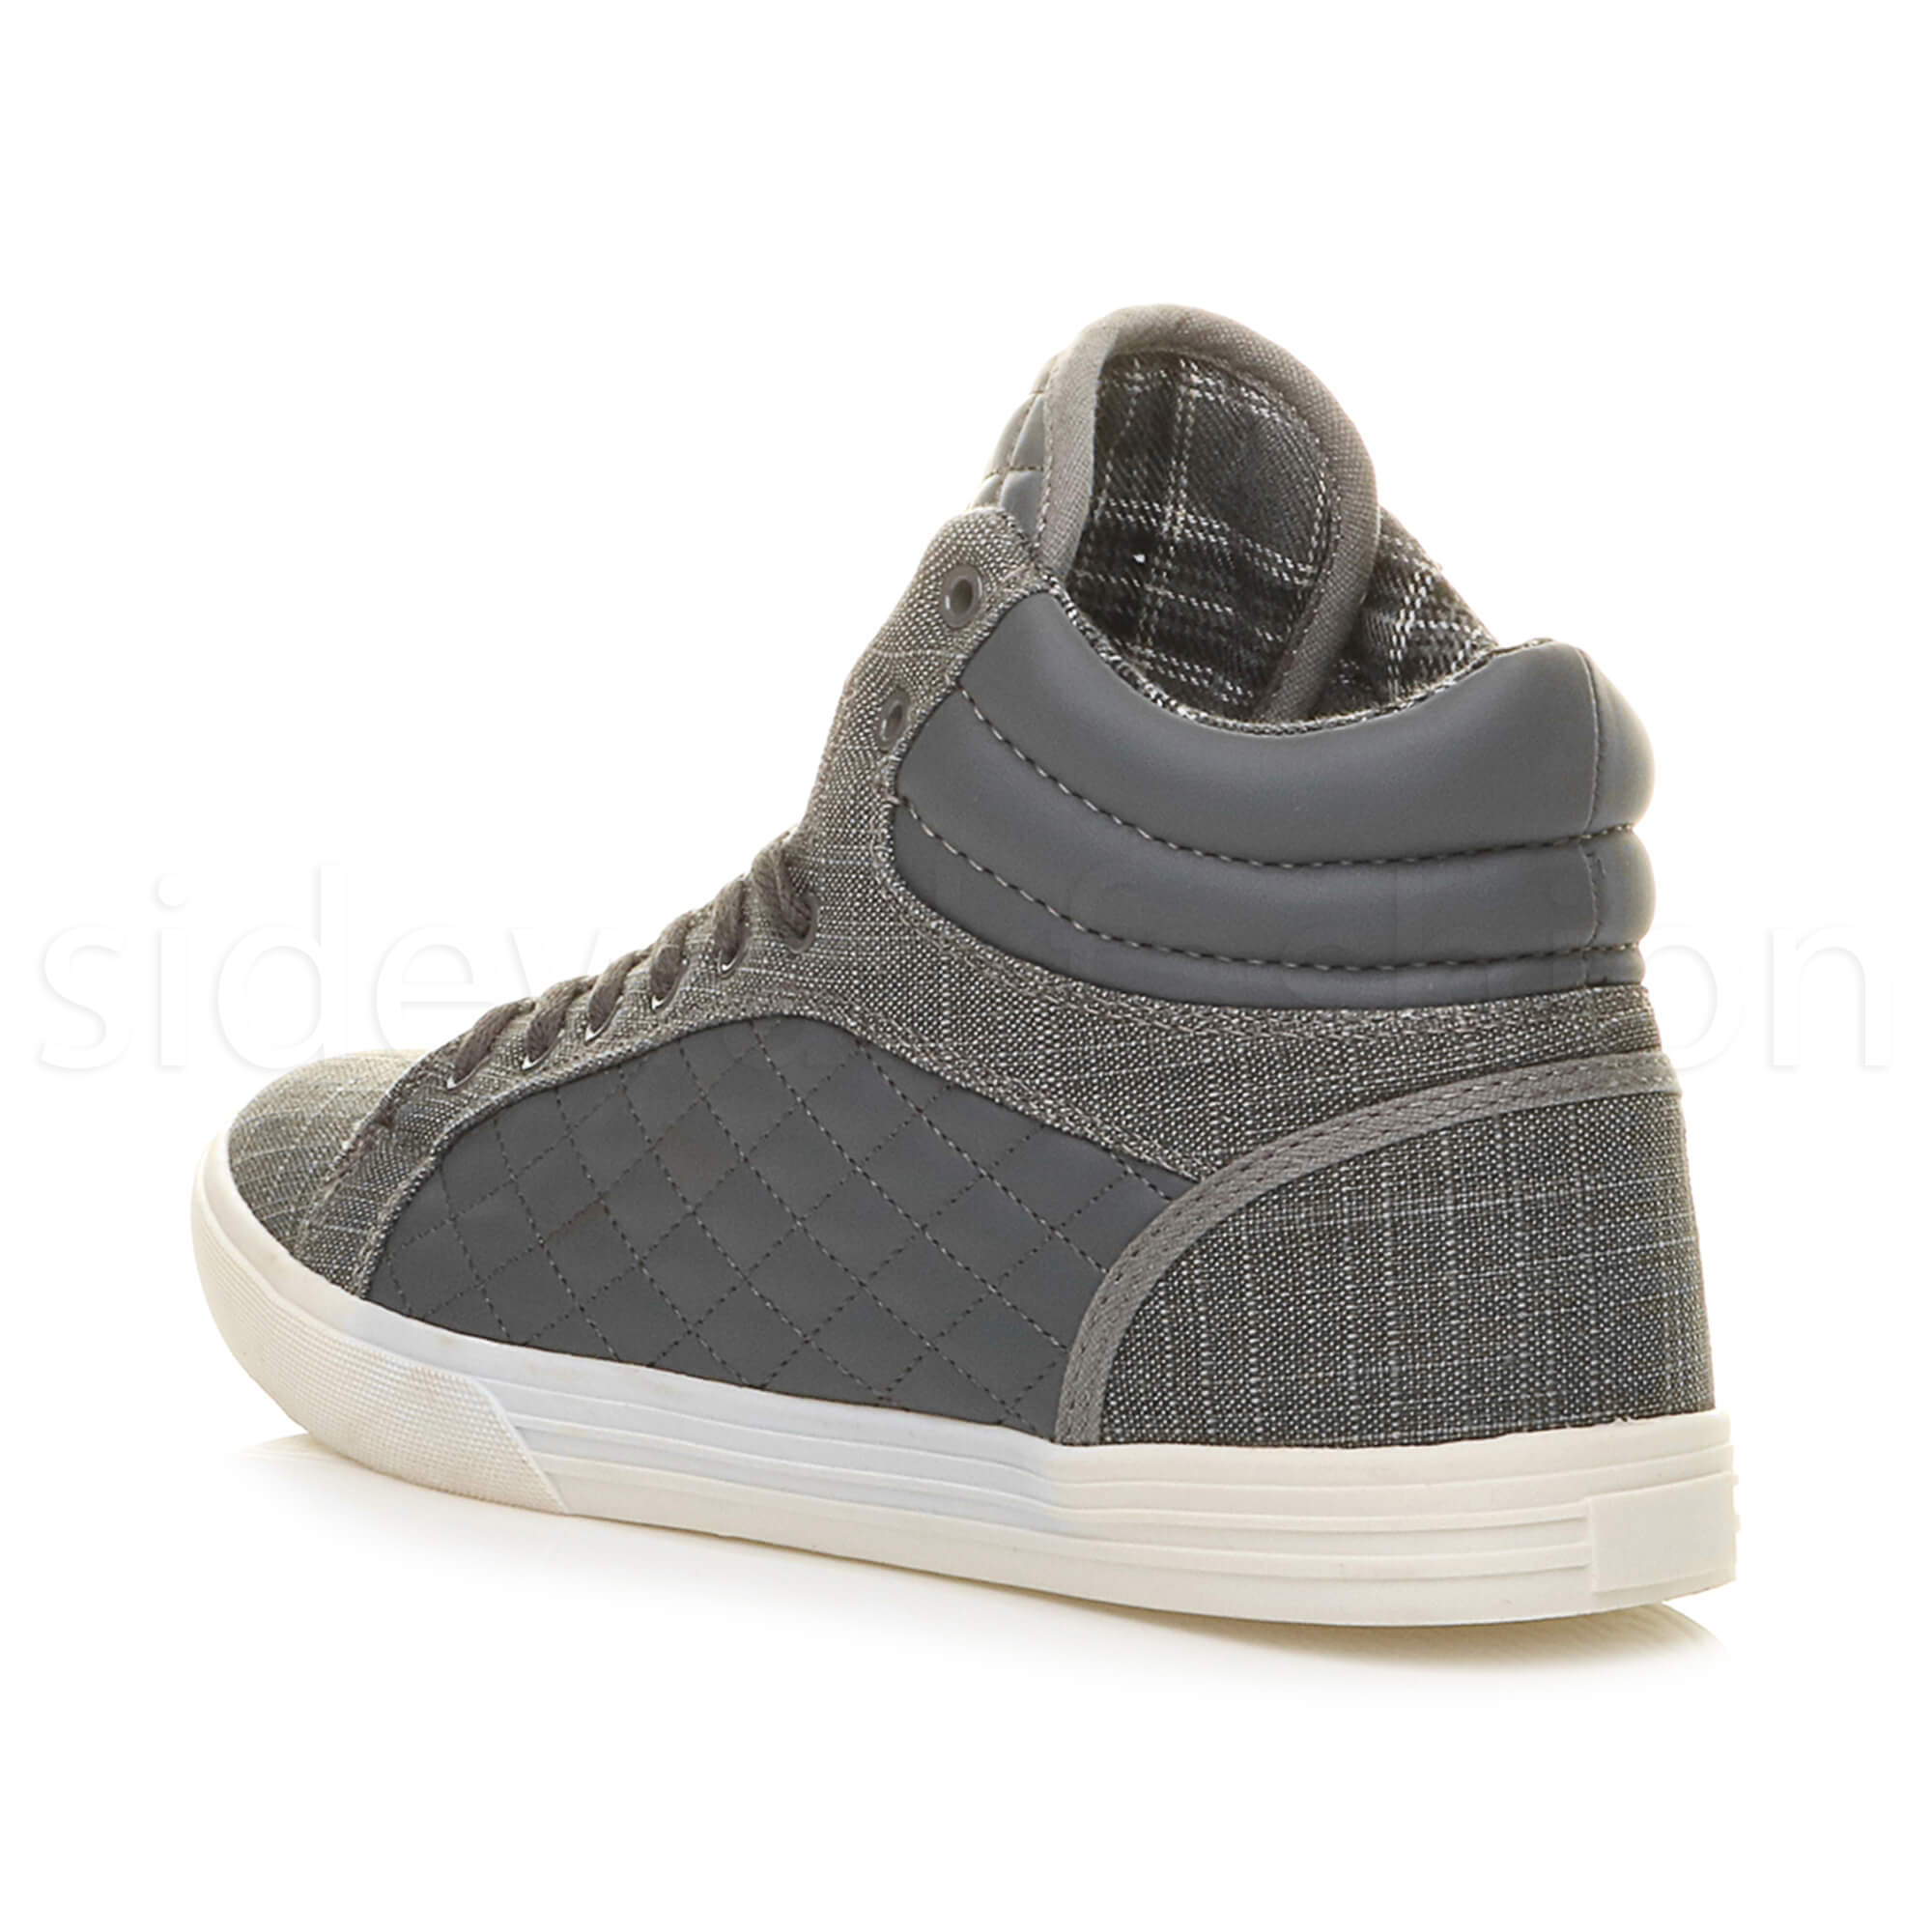 Mens-flat-lace-up-quilted-casual-hi-high-top-ankle-boots-trainers-sneakers-size thumbnail 12